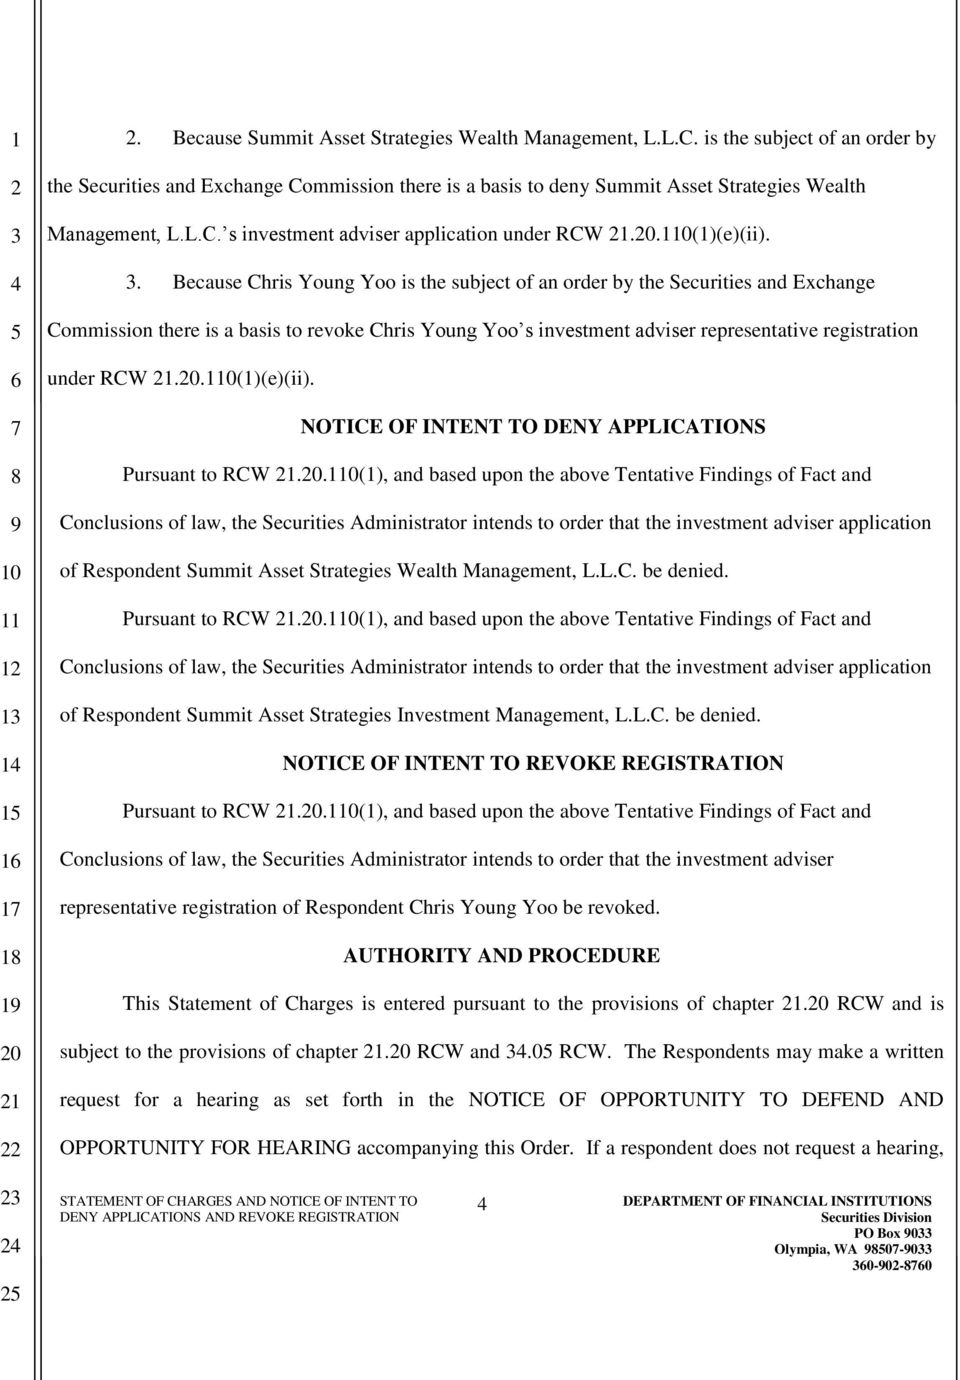 . Because Chris Young Yoo is the subject of an order by the Securities and Exchange Commission there is a basis to revoke Chris Young Yoo s investment adviser representative registration under RCW.